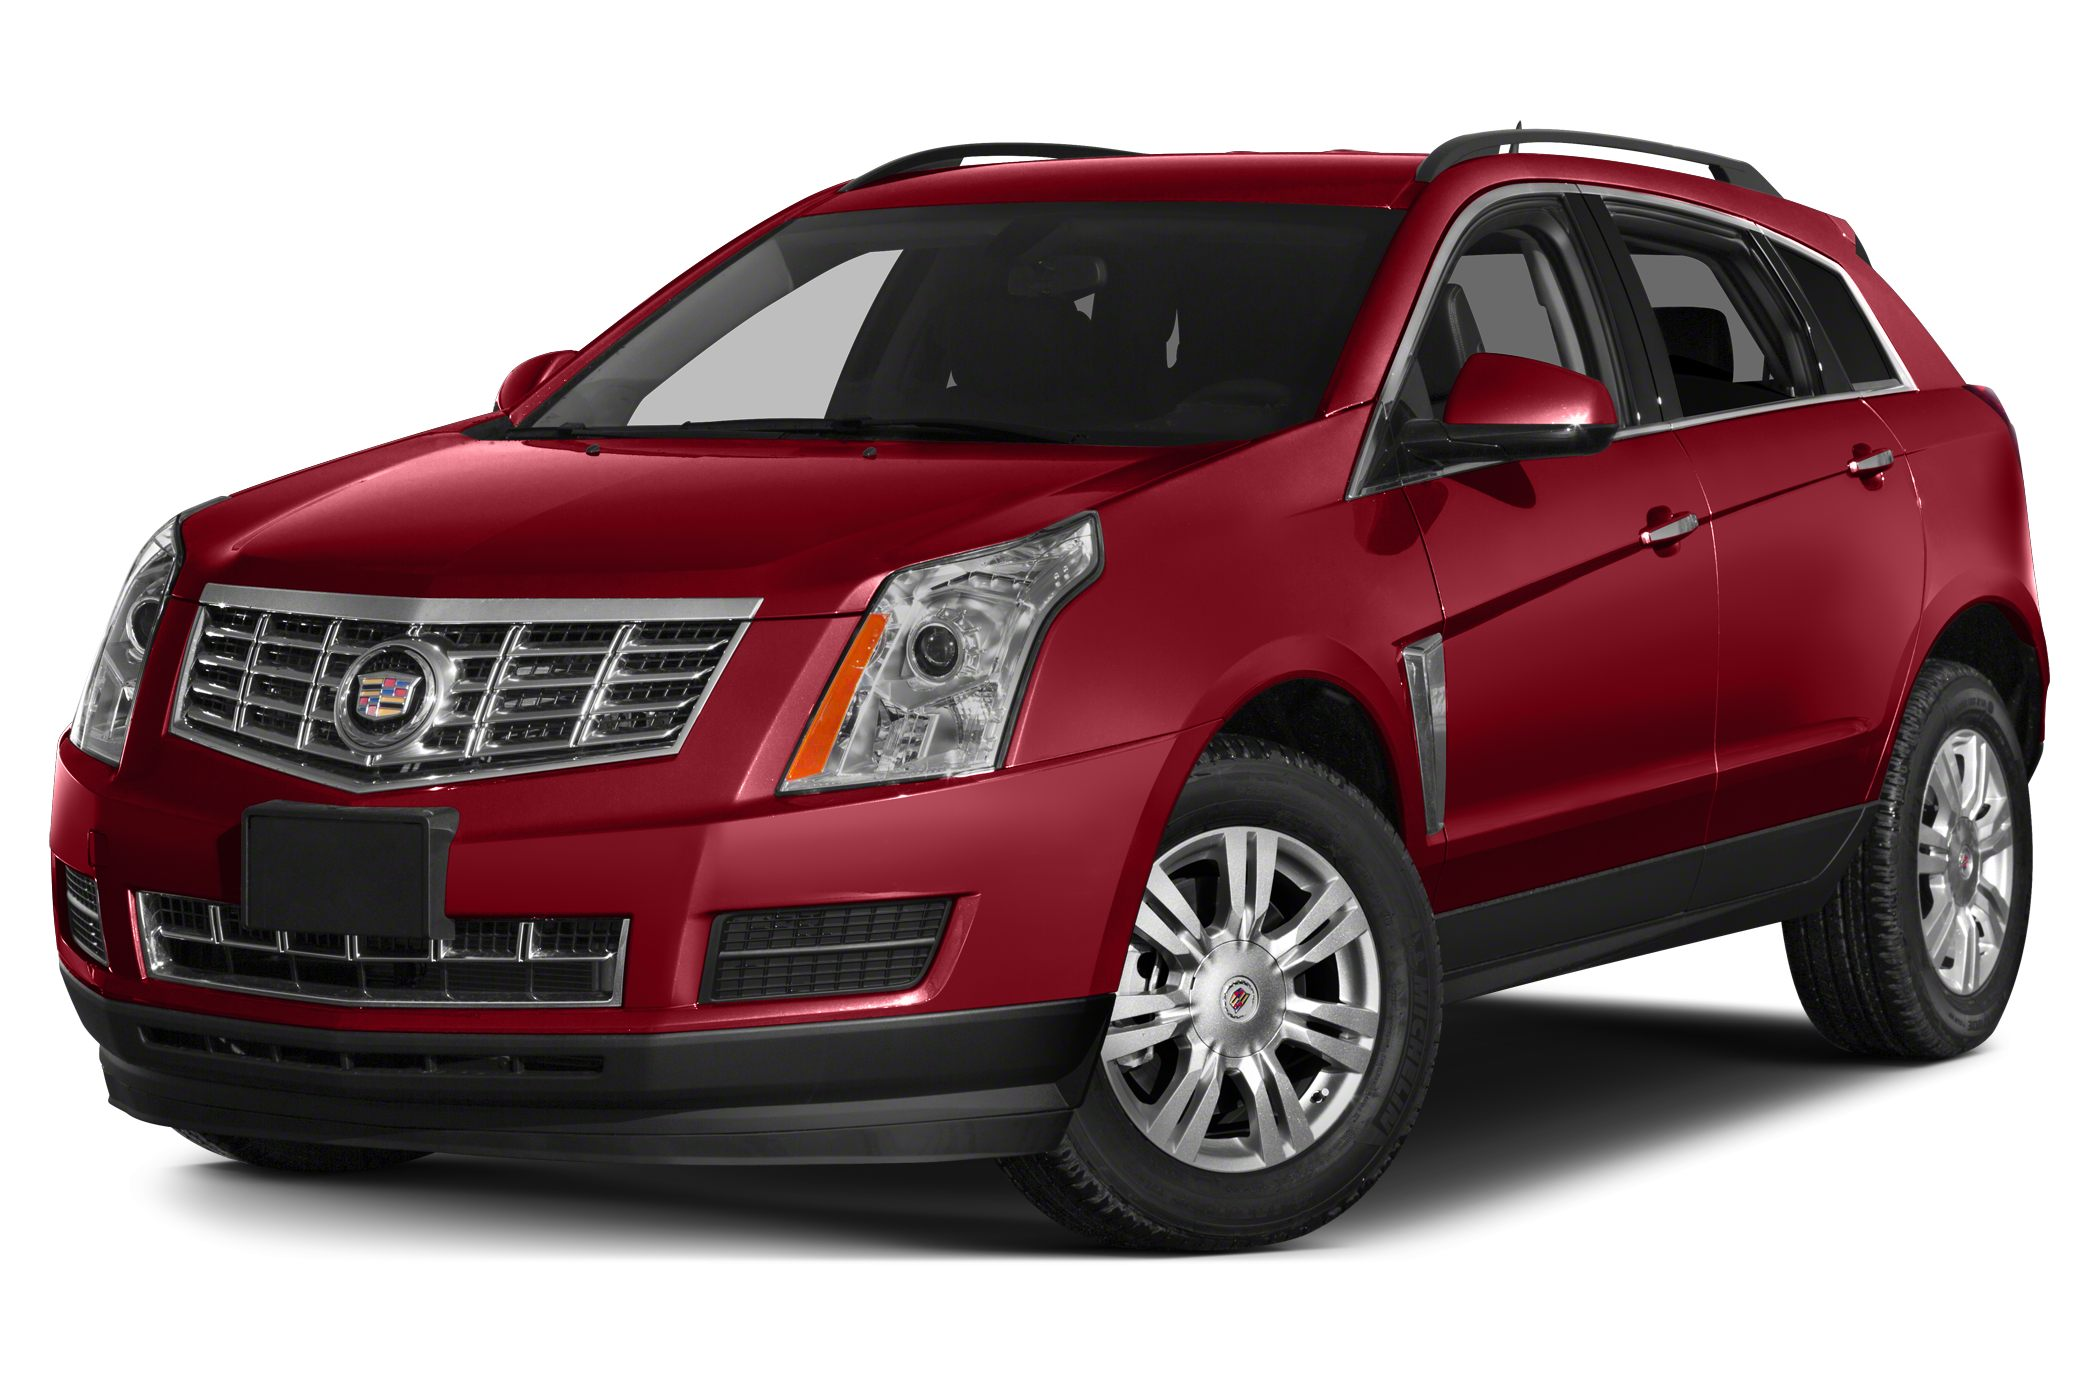 2015 Cadillac SRX Luxury Collection SUV for sale in Vernon Rockville for $48,366 with 0 miles.